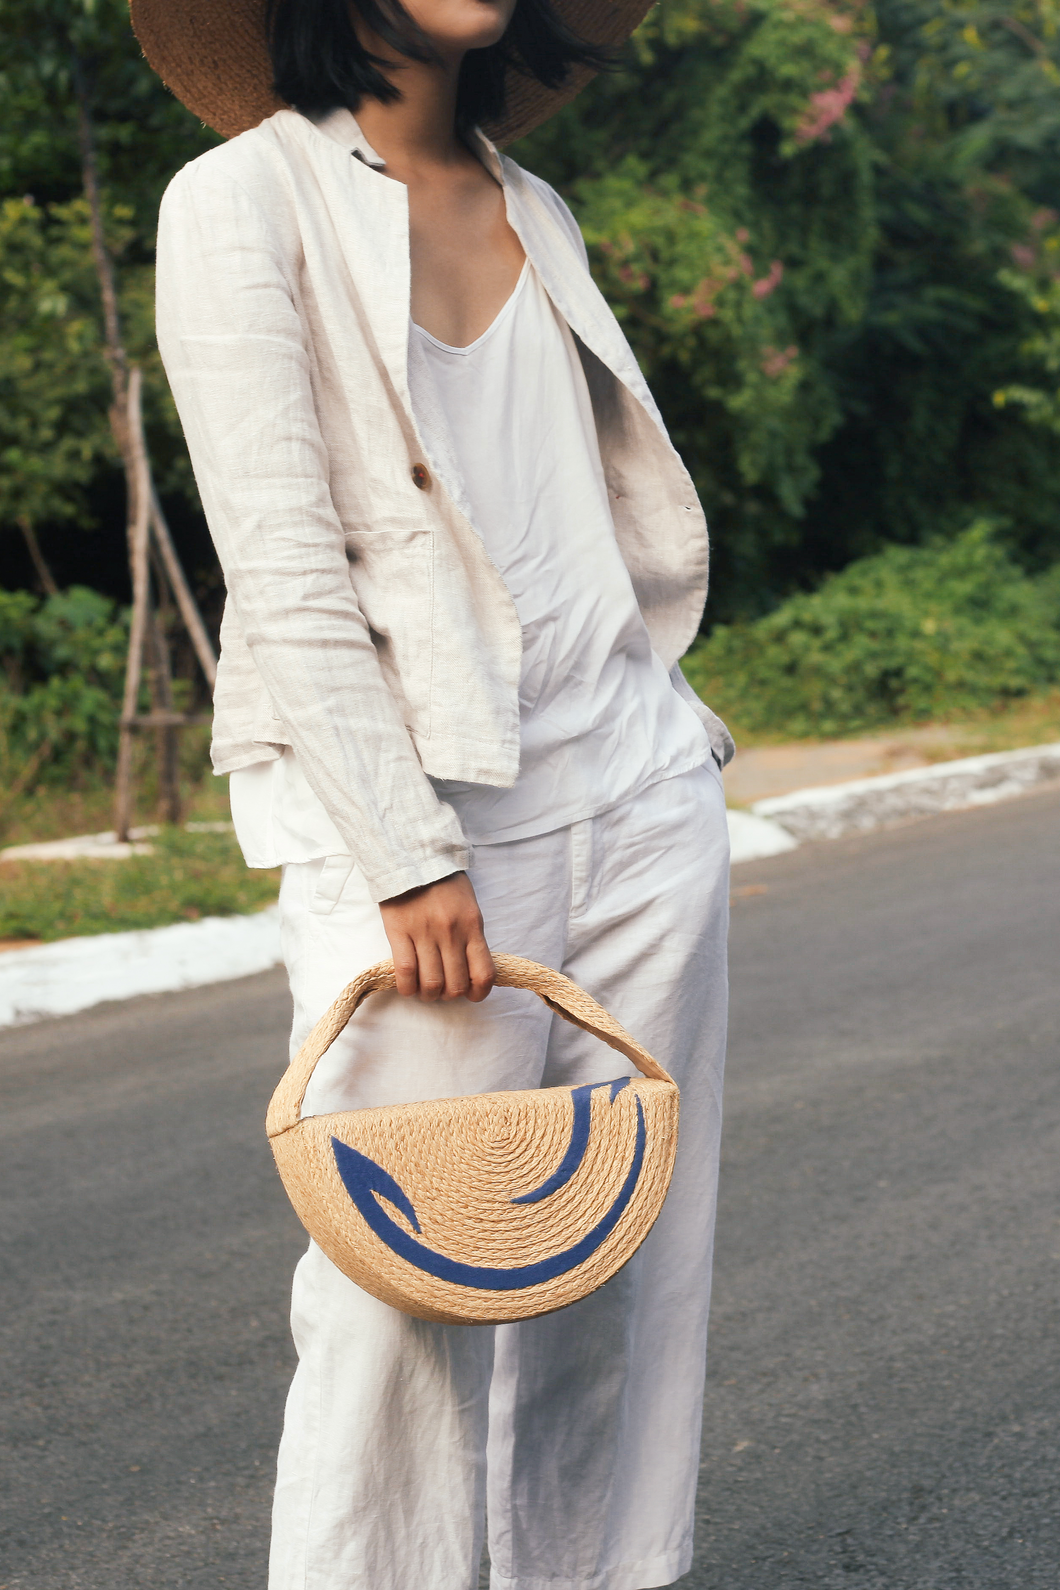 Formscape collection, Raffia and recycled cotton bag, Eco Luxury, Wave hat